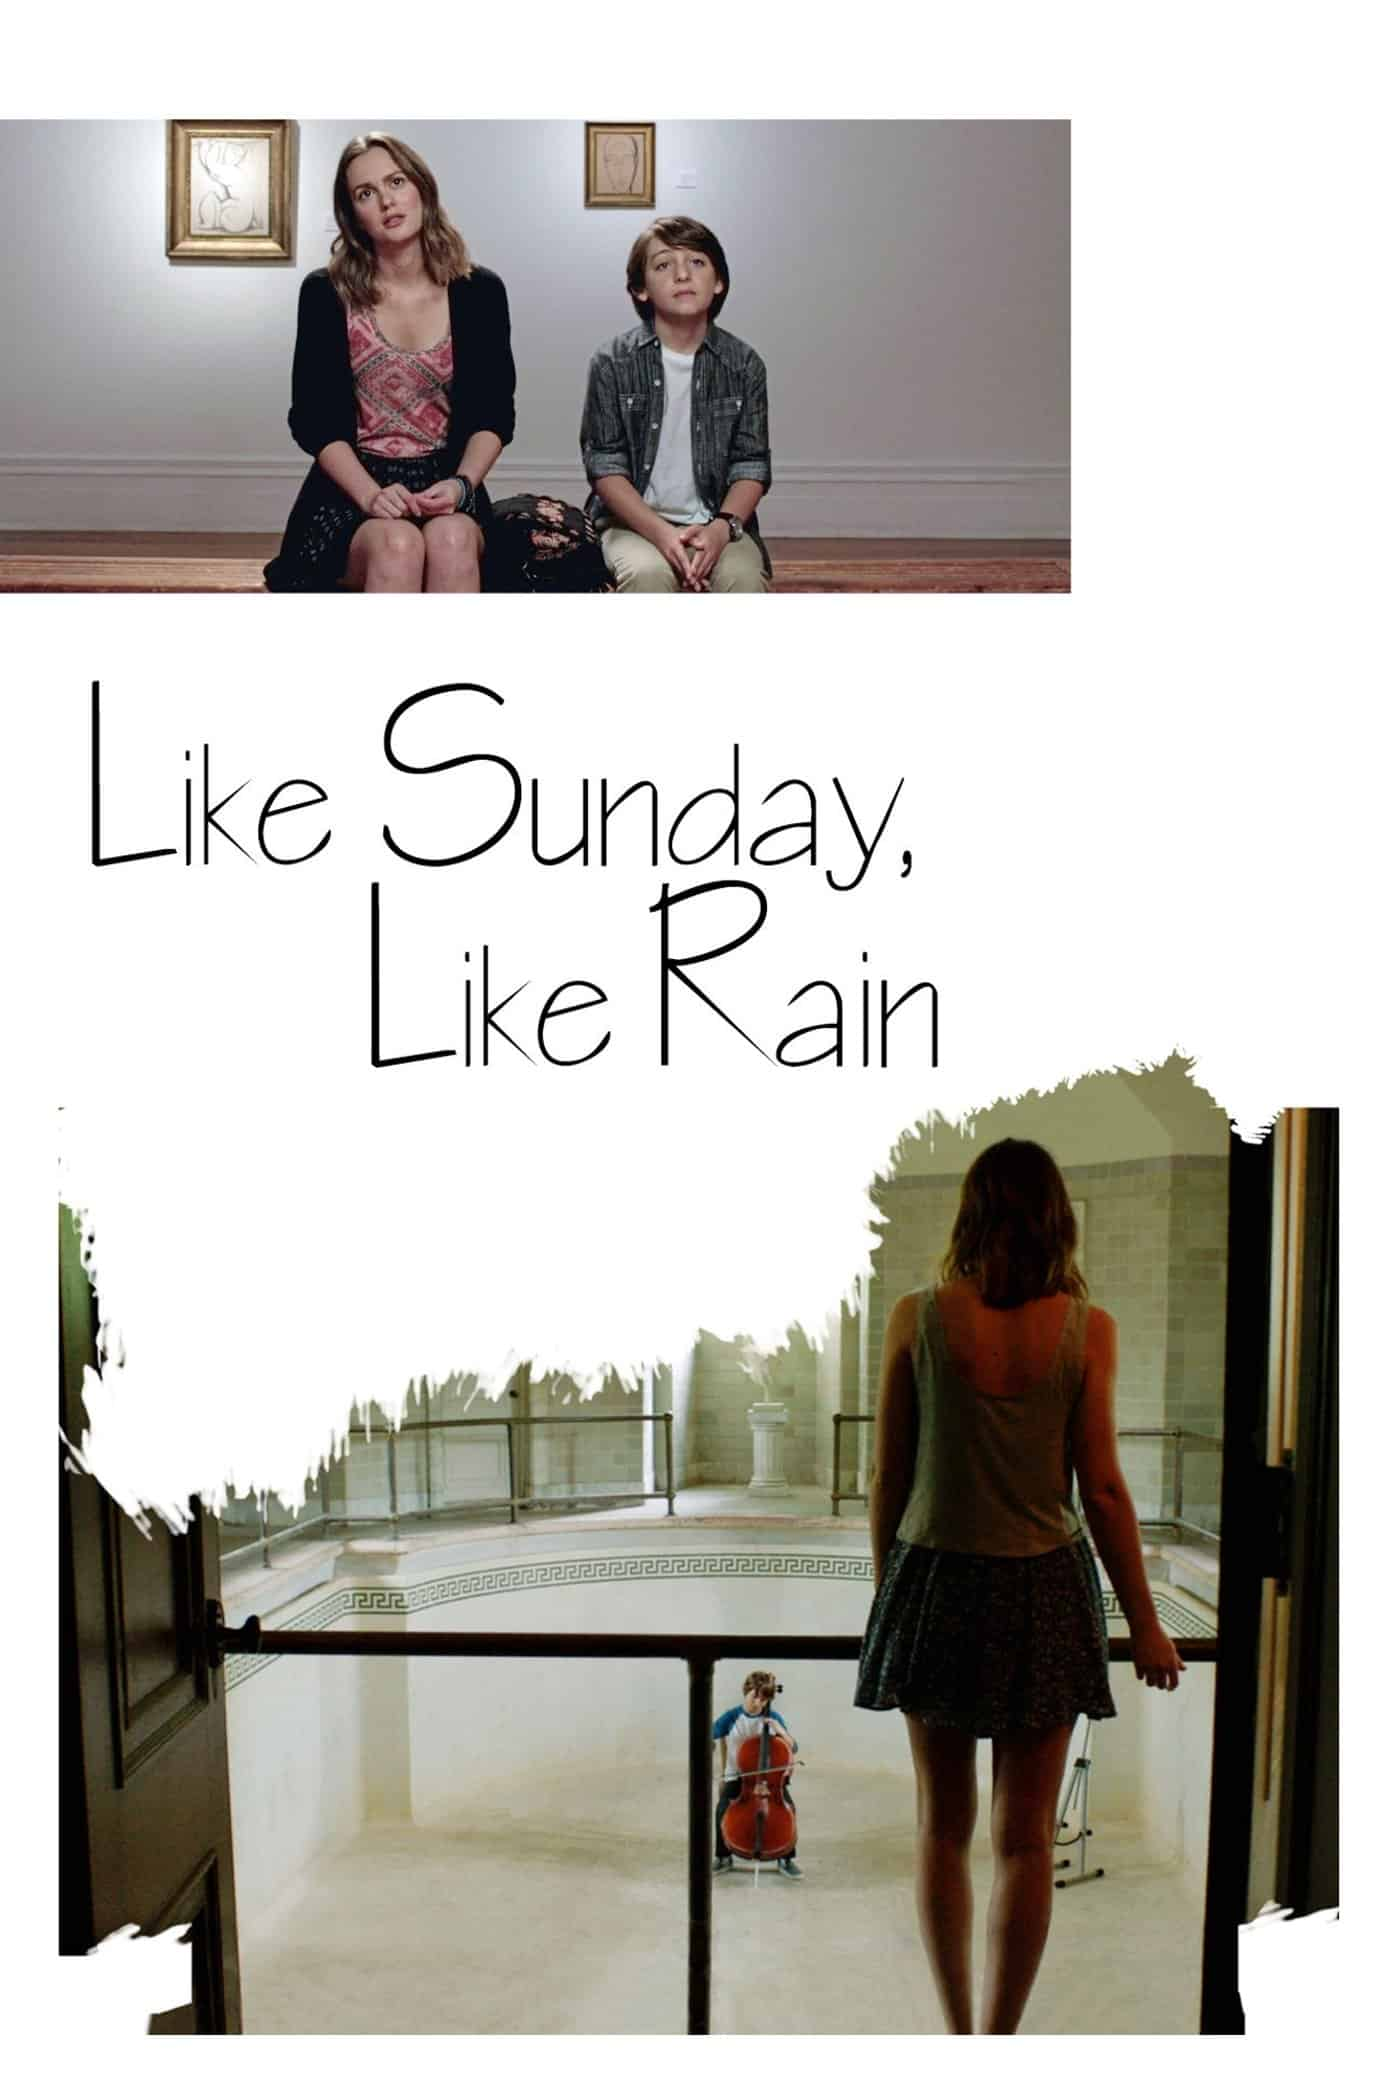 Like Sunday, Like Rain, 2014